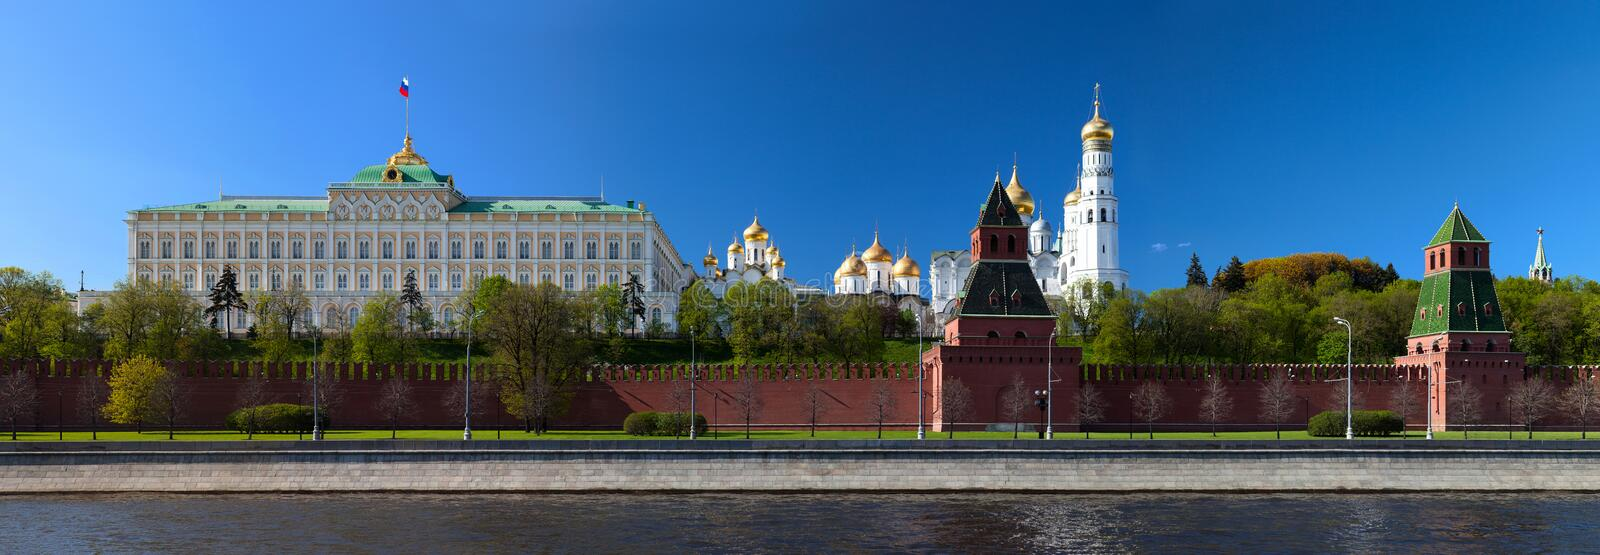 Download Red Square In Moscow stock photo. Image of clock, christian - 19495842